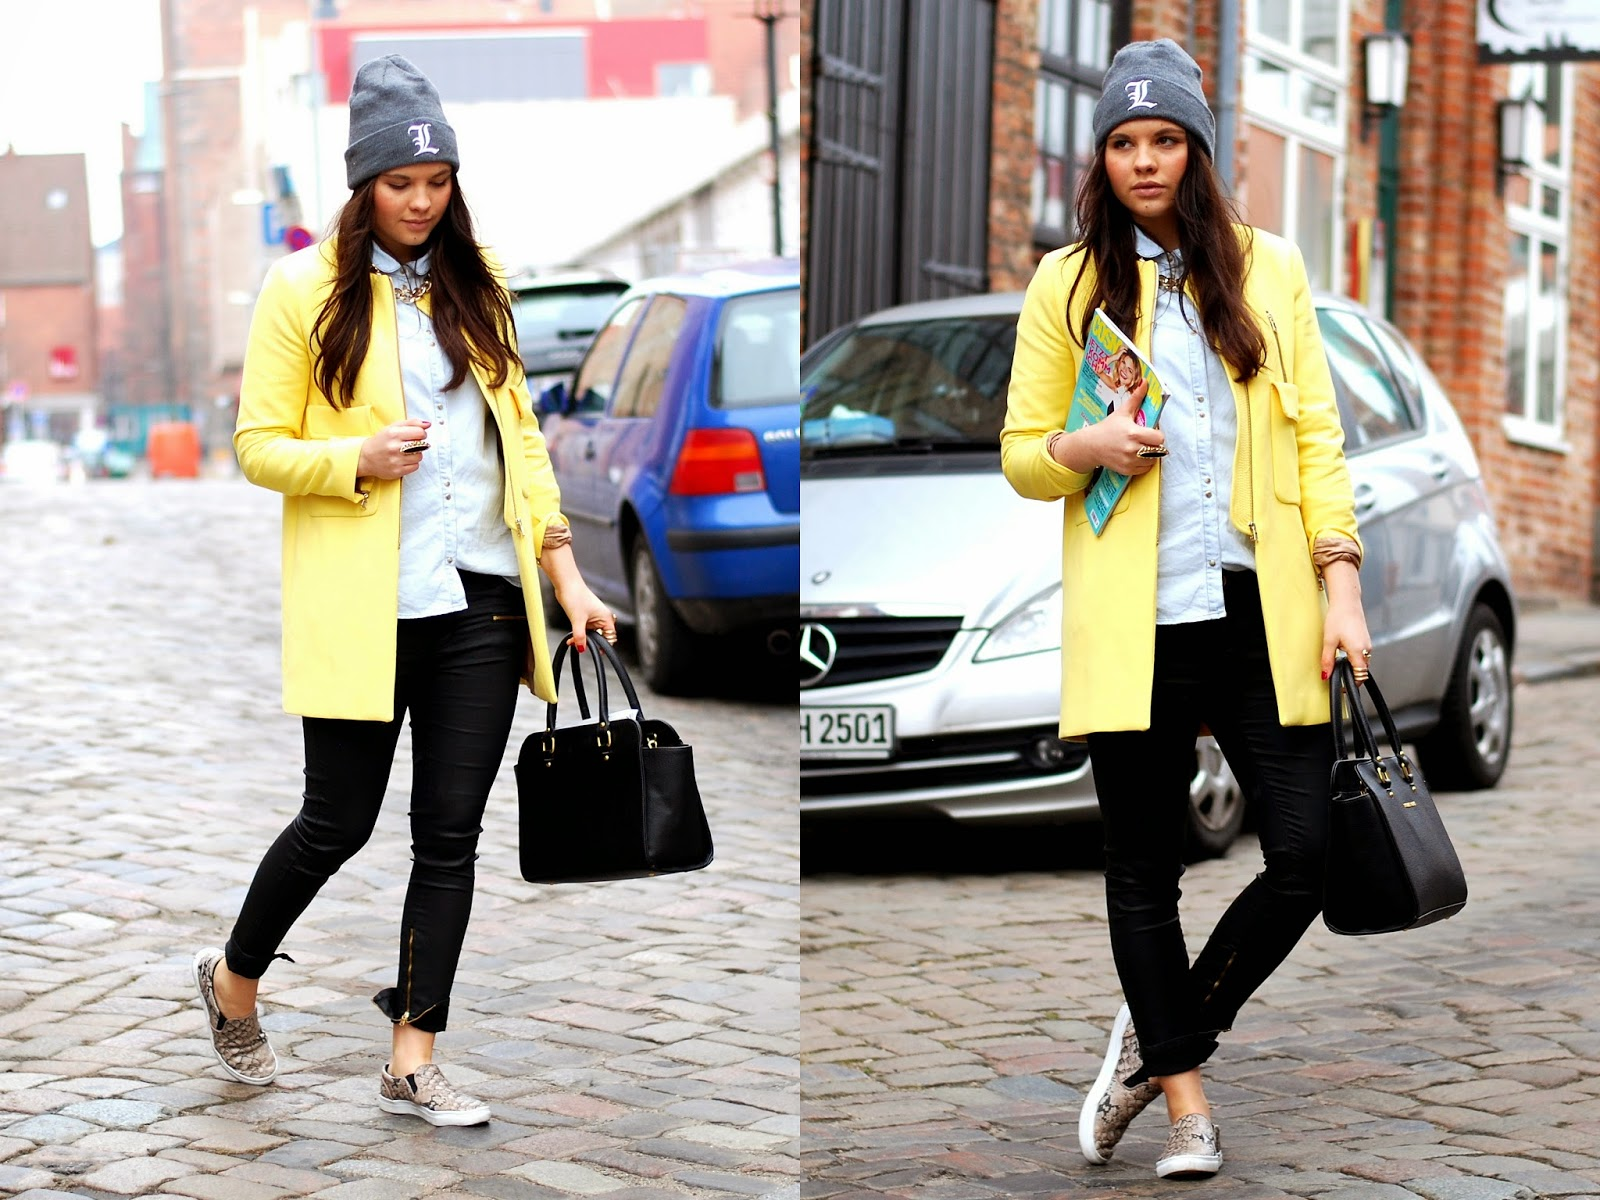 http://finjamaries.blogspot.de/2014/03/jeans-meets-yellow.html